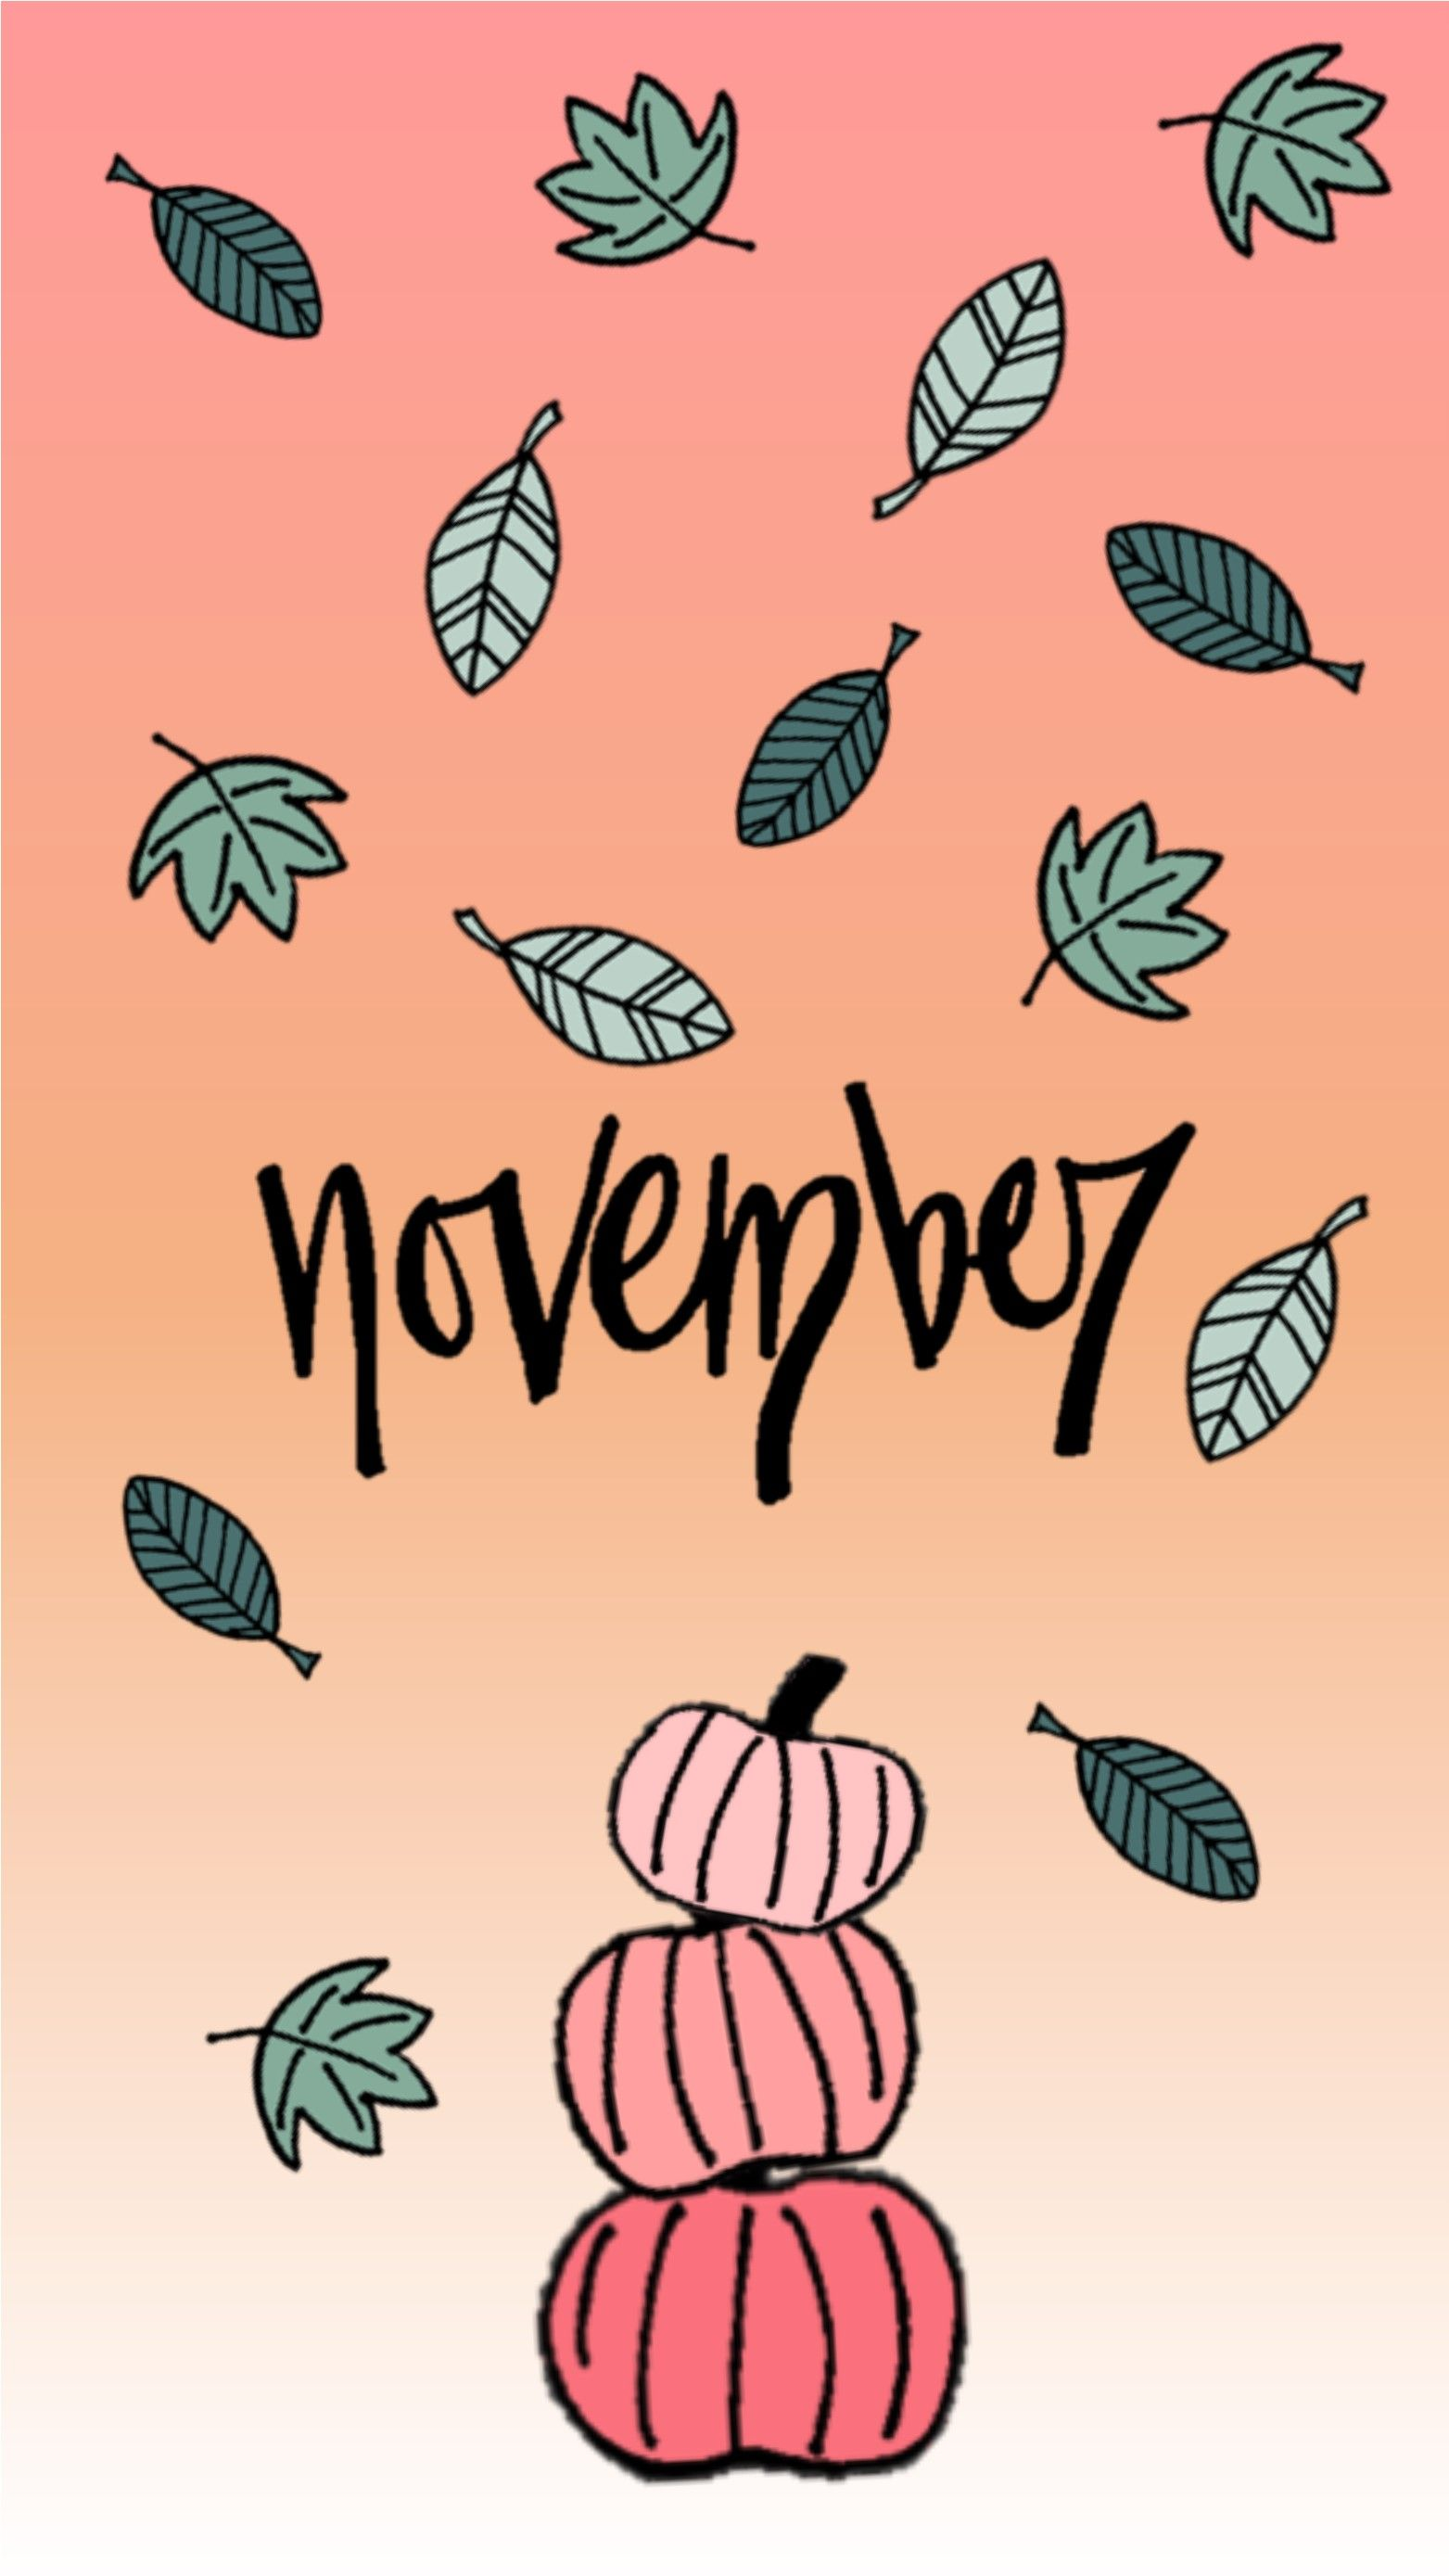 November Wallpapers for Mobile iPhone Android Mobile